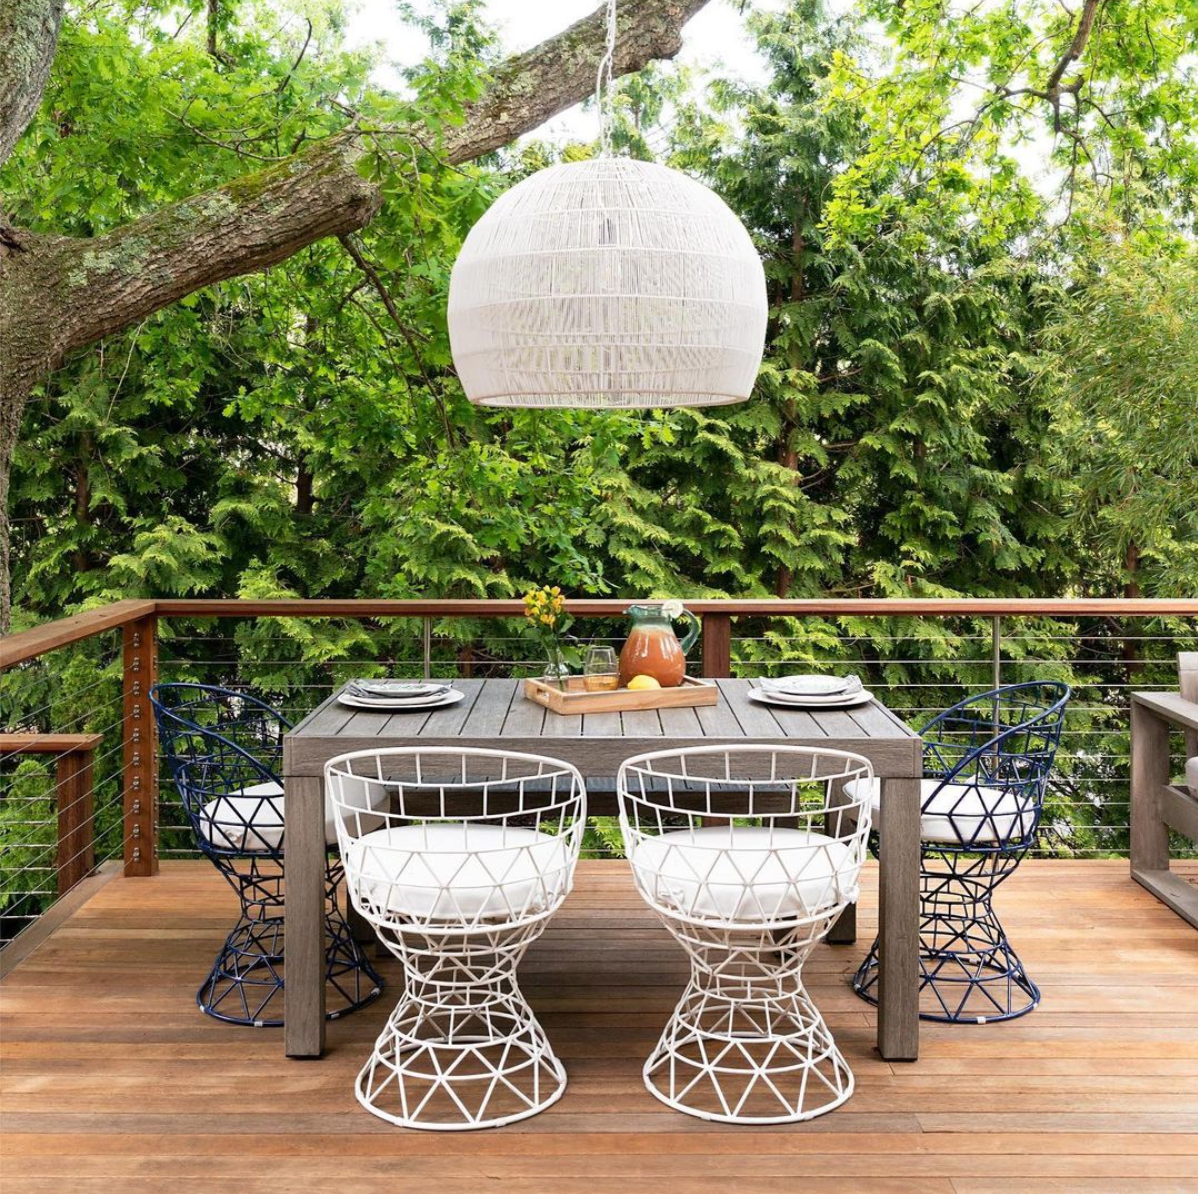 An outdoor dining room with several bold chairs and a large chandelier